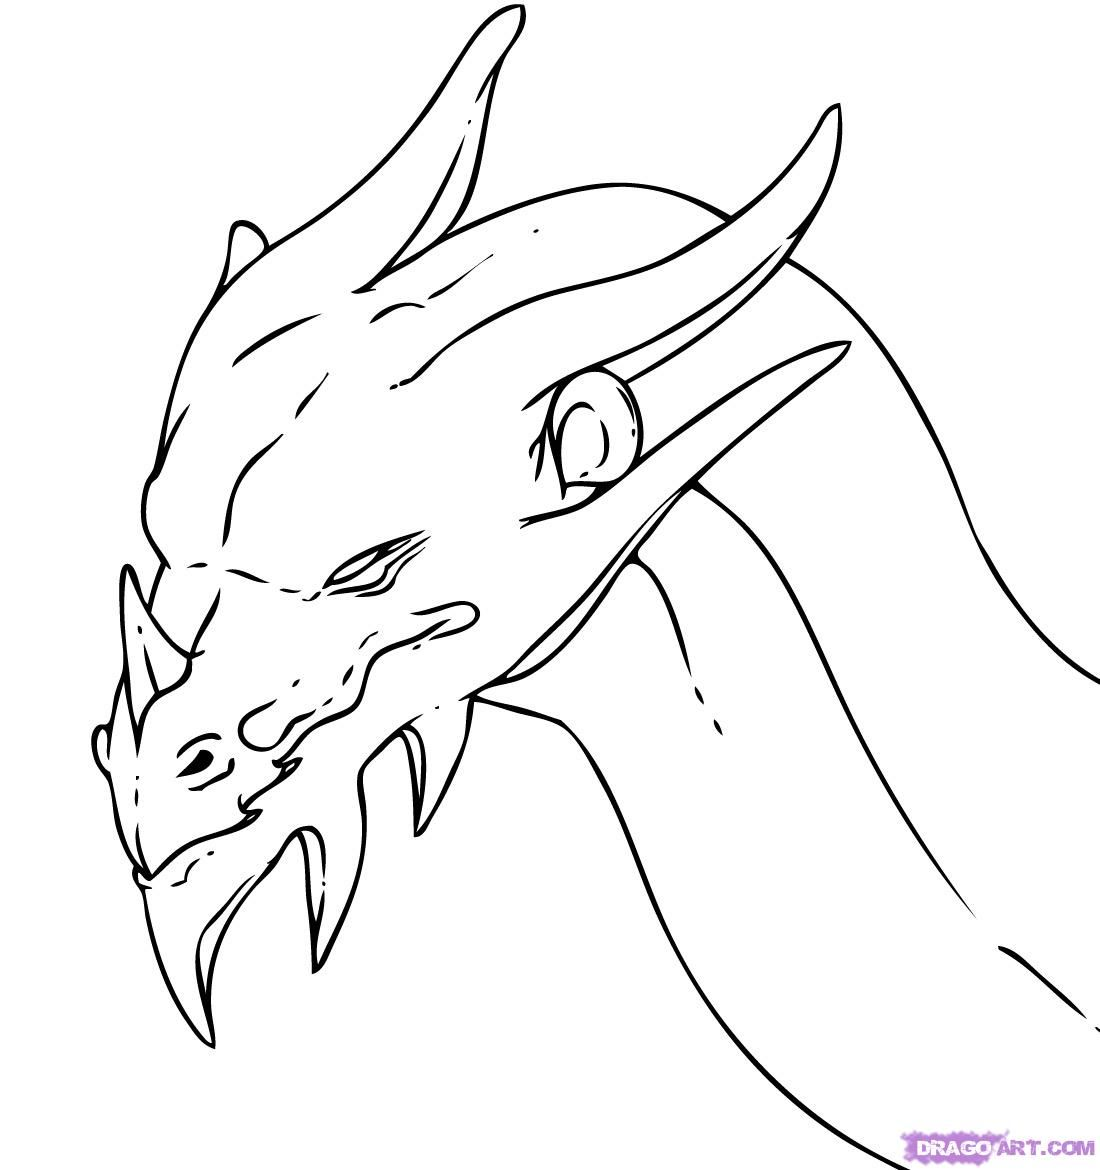 Easy Dragons Drawing At Getdrawings Com Free For Personal